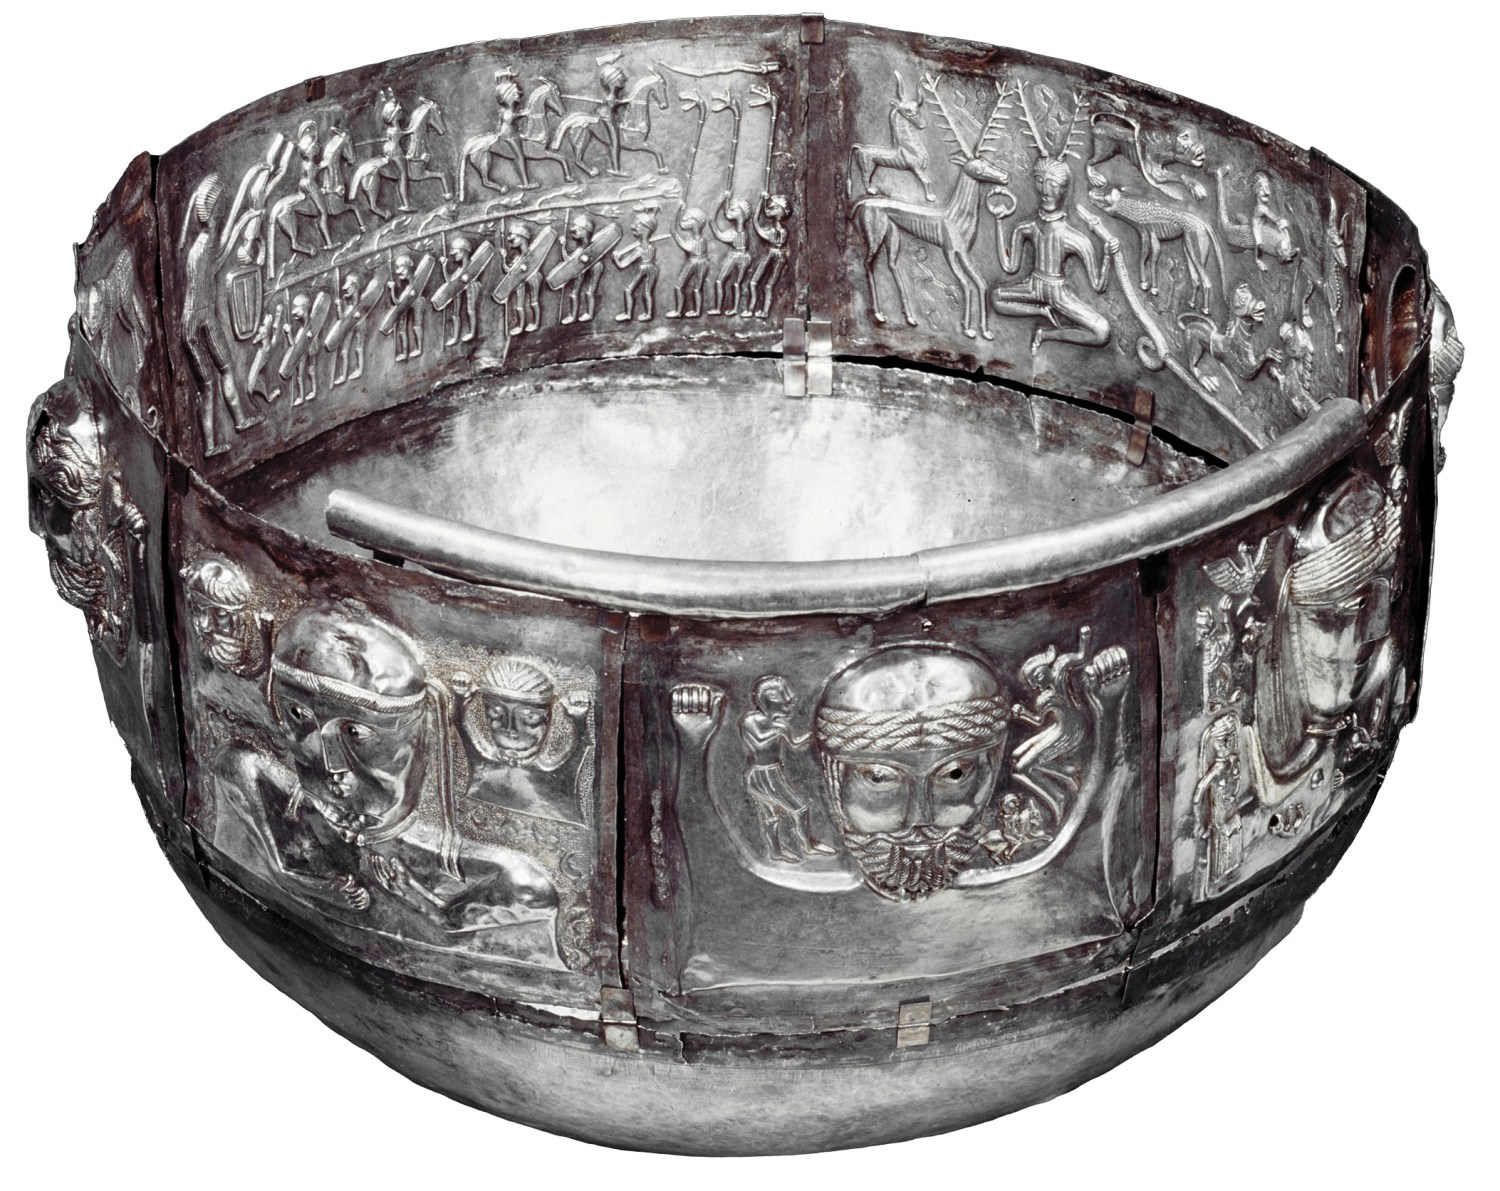 ABOVE Carnyx-players carrying animal-headed war horns process around the inside of the Gundestrup cauldron. This elaborate vessel was itself placed in a Danish bog, while the remains of instruments like those depicted here have been recovered from wetlands in continental Europe and Scotland.